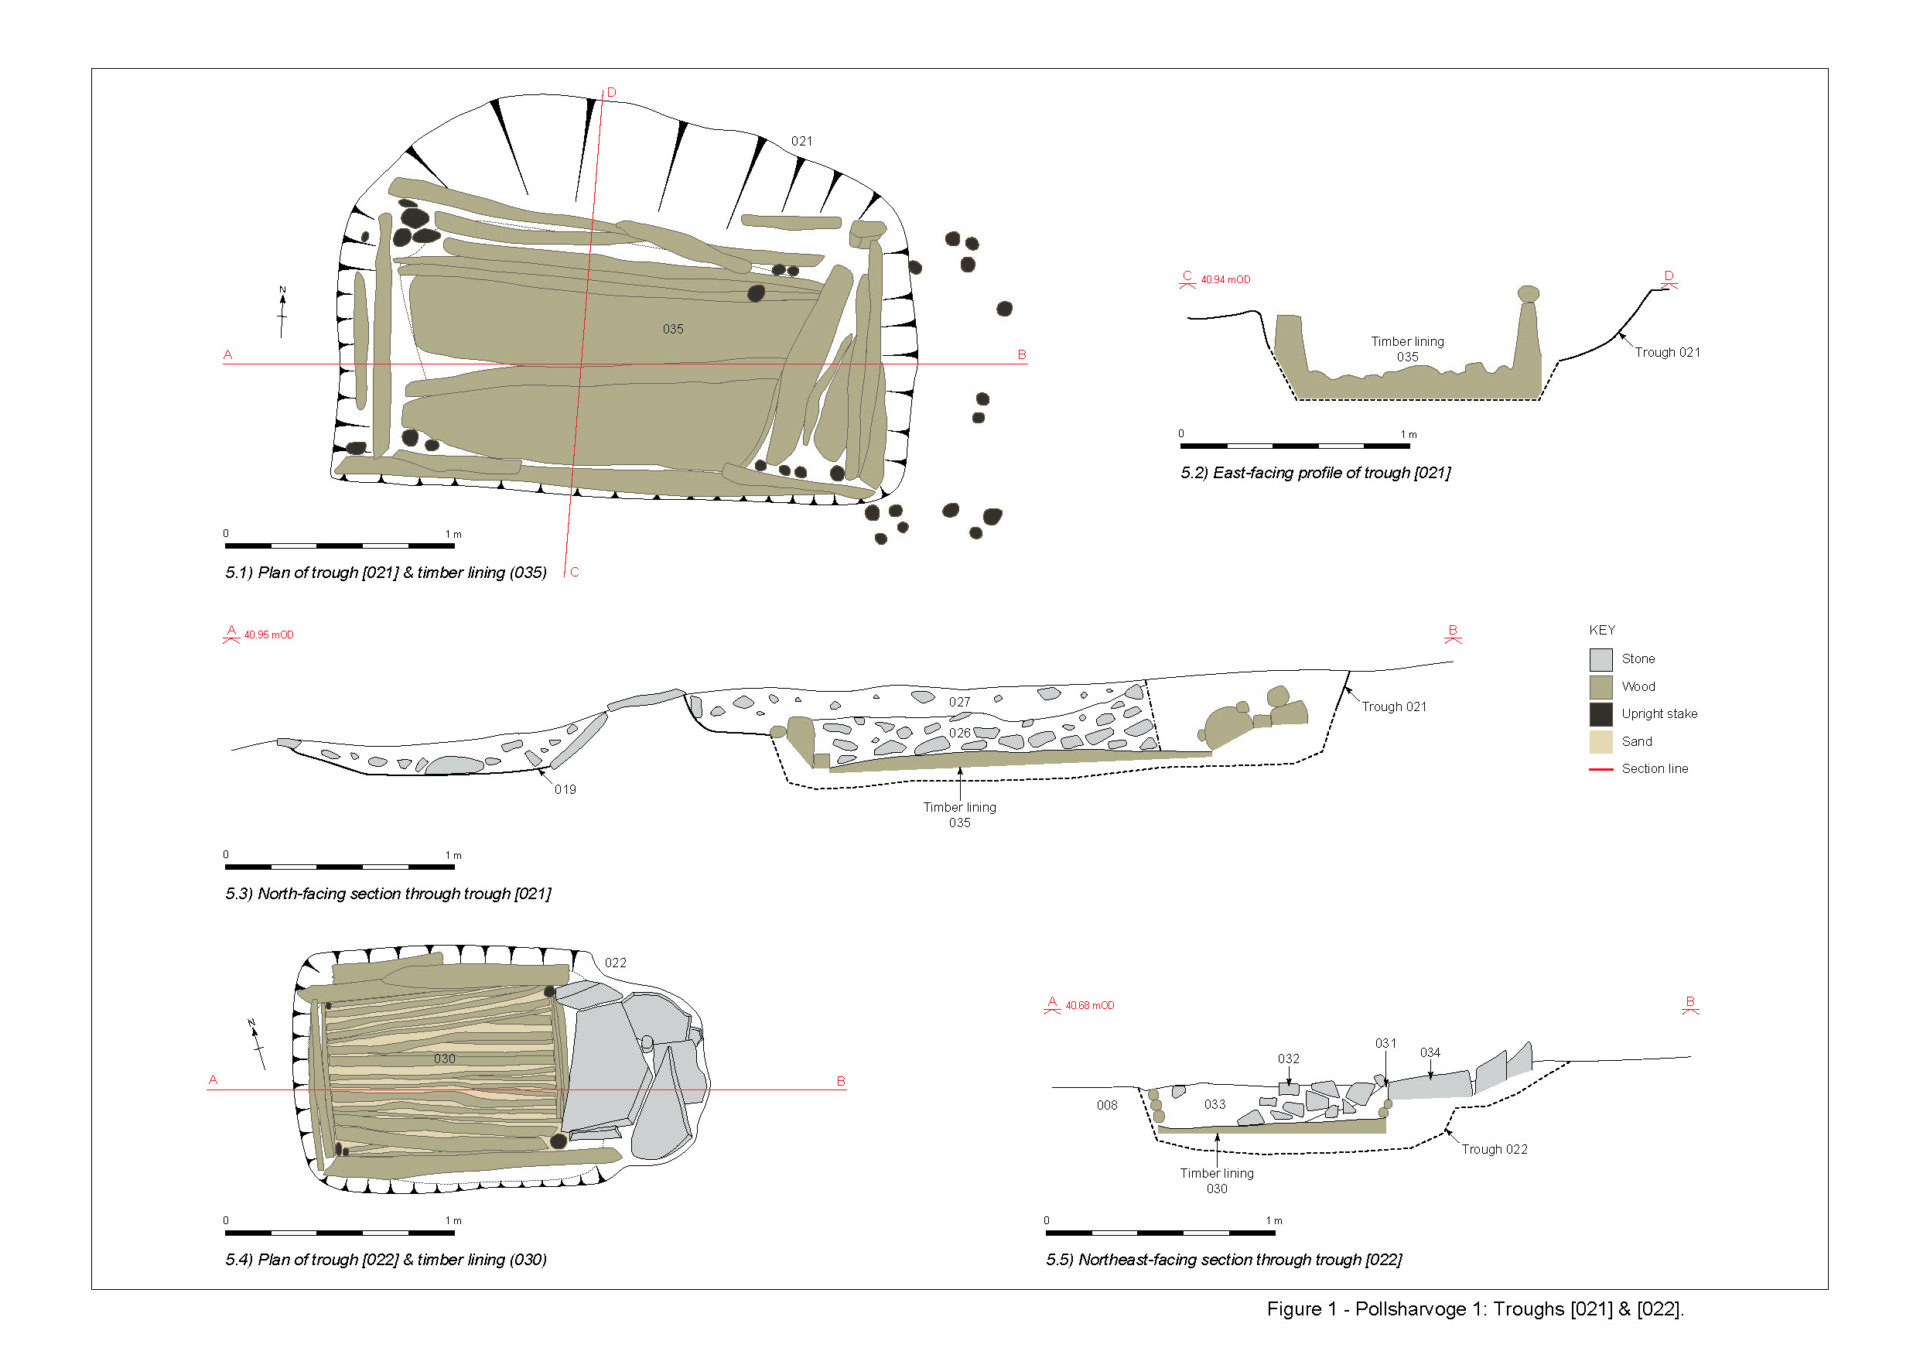 Figure 1 - Plans and sections of the two timber-lined troughs